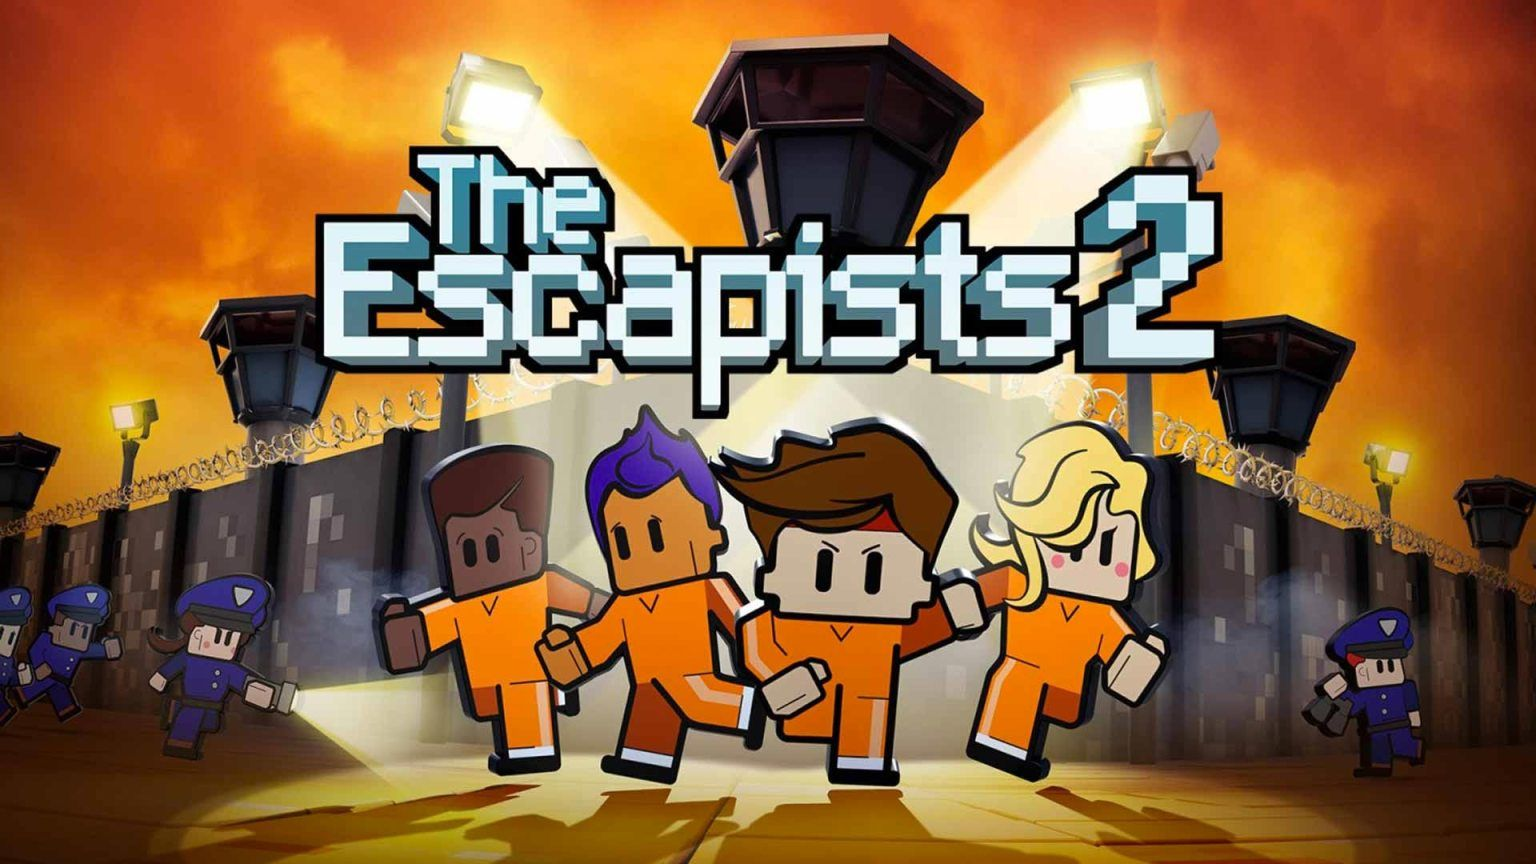 How To Get The Escapists For Free On Xbox One